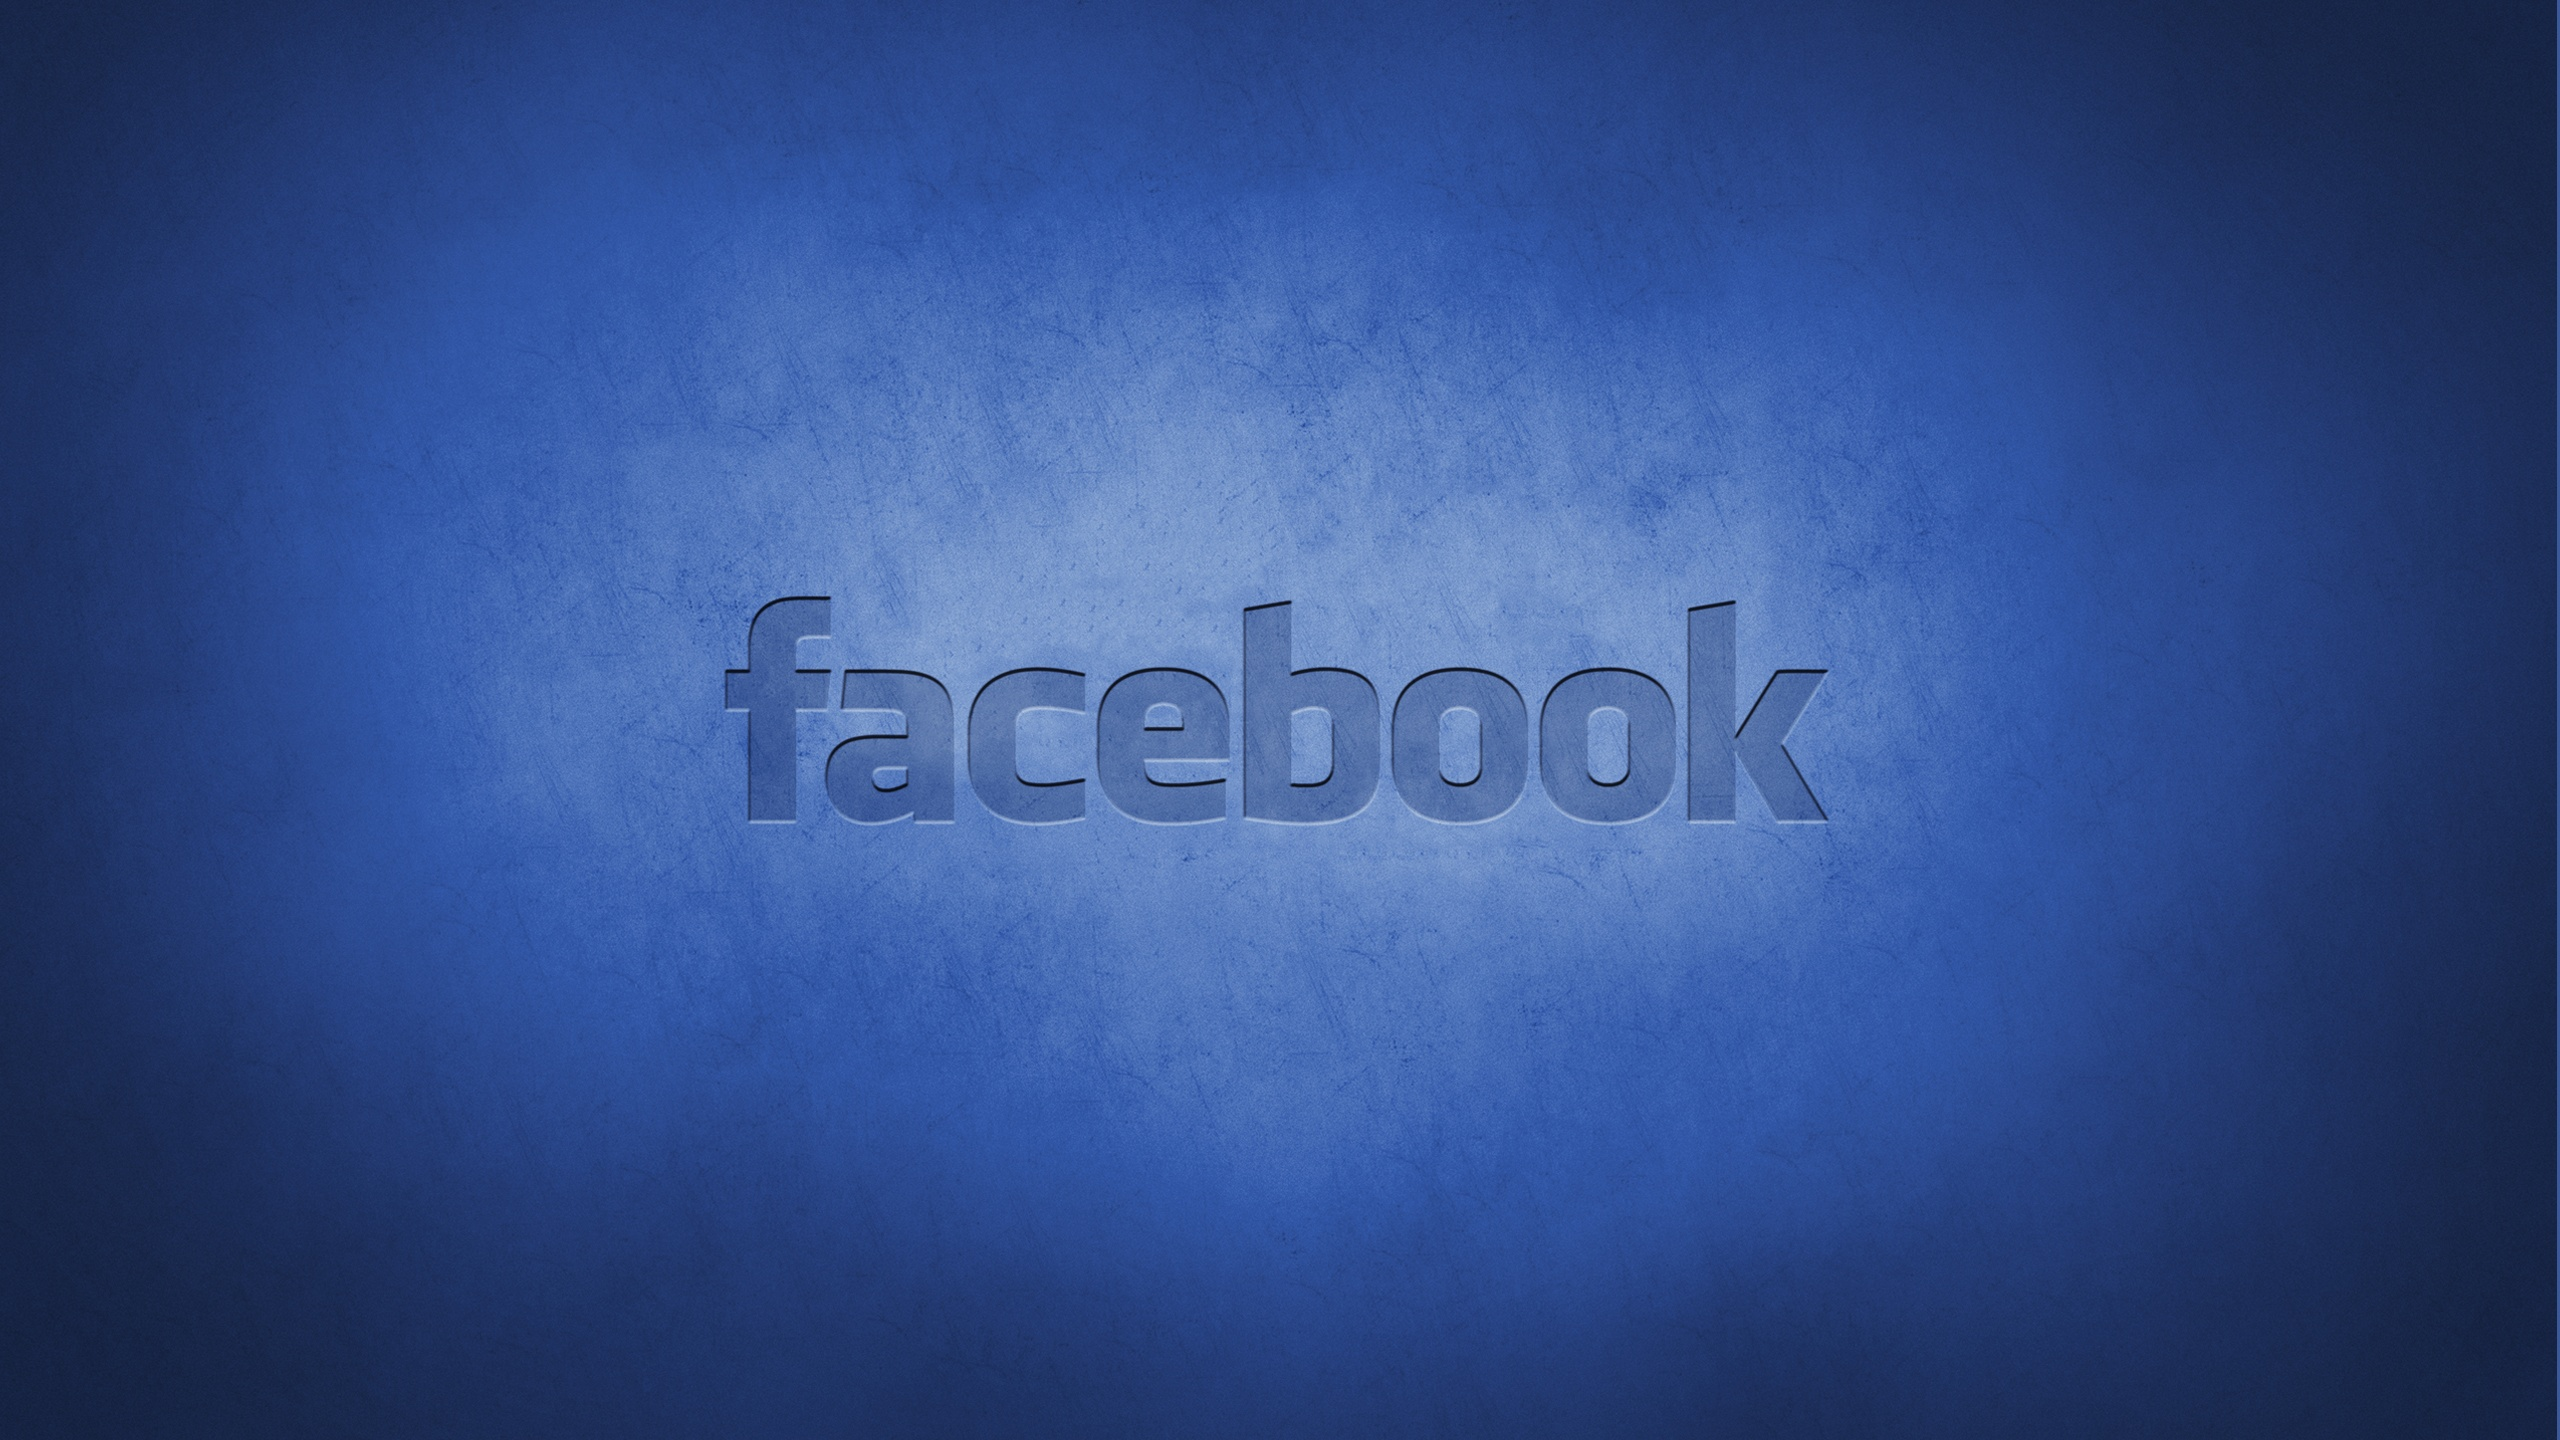 33 Facebook HD Wallpapers Backgrounds Wallpaper Abyss